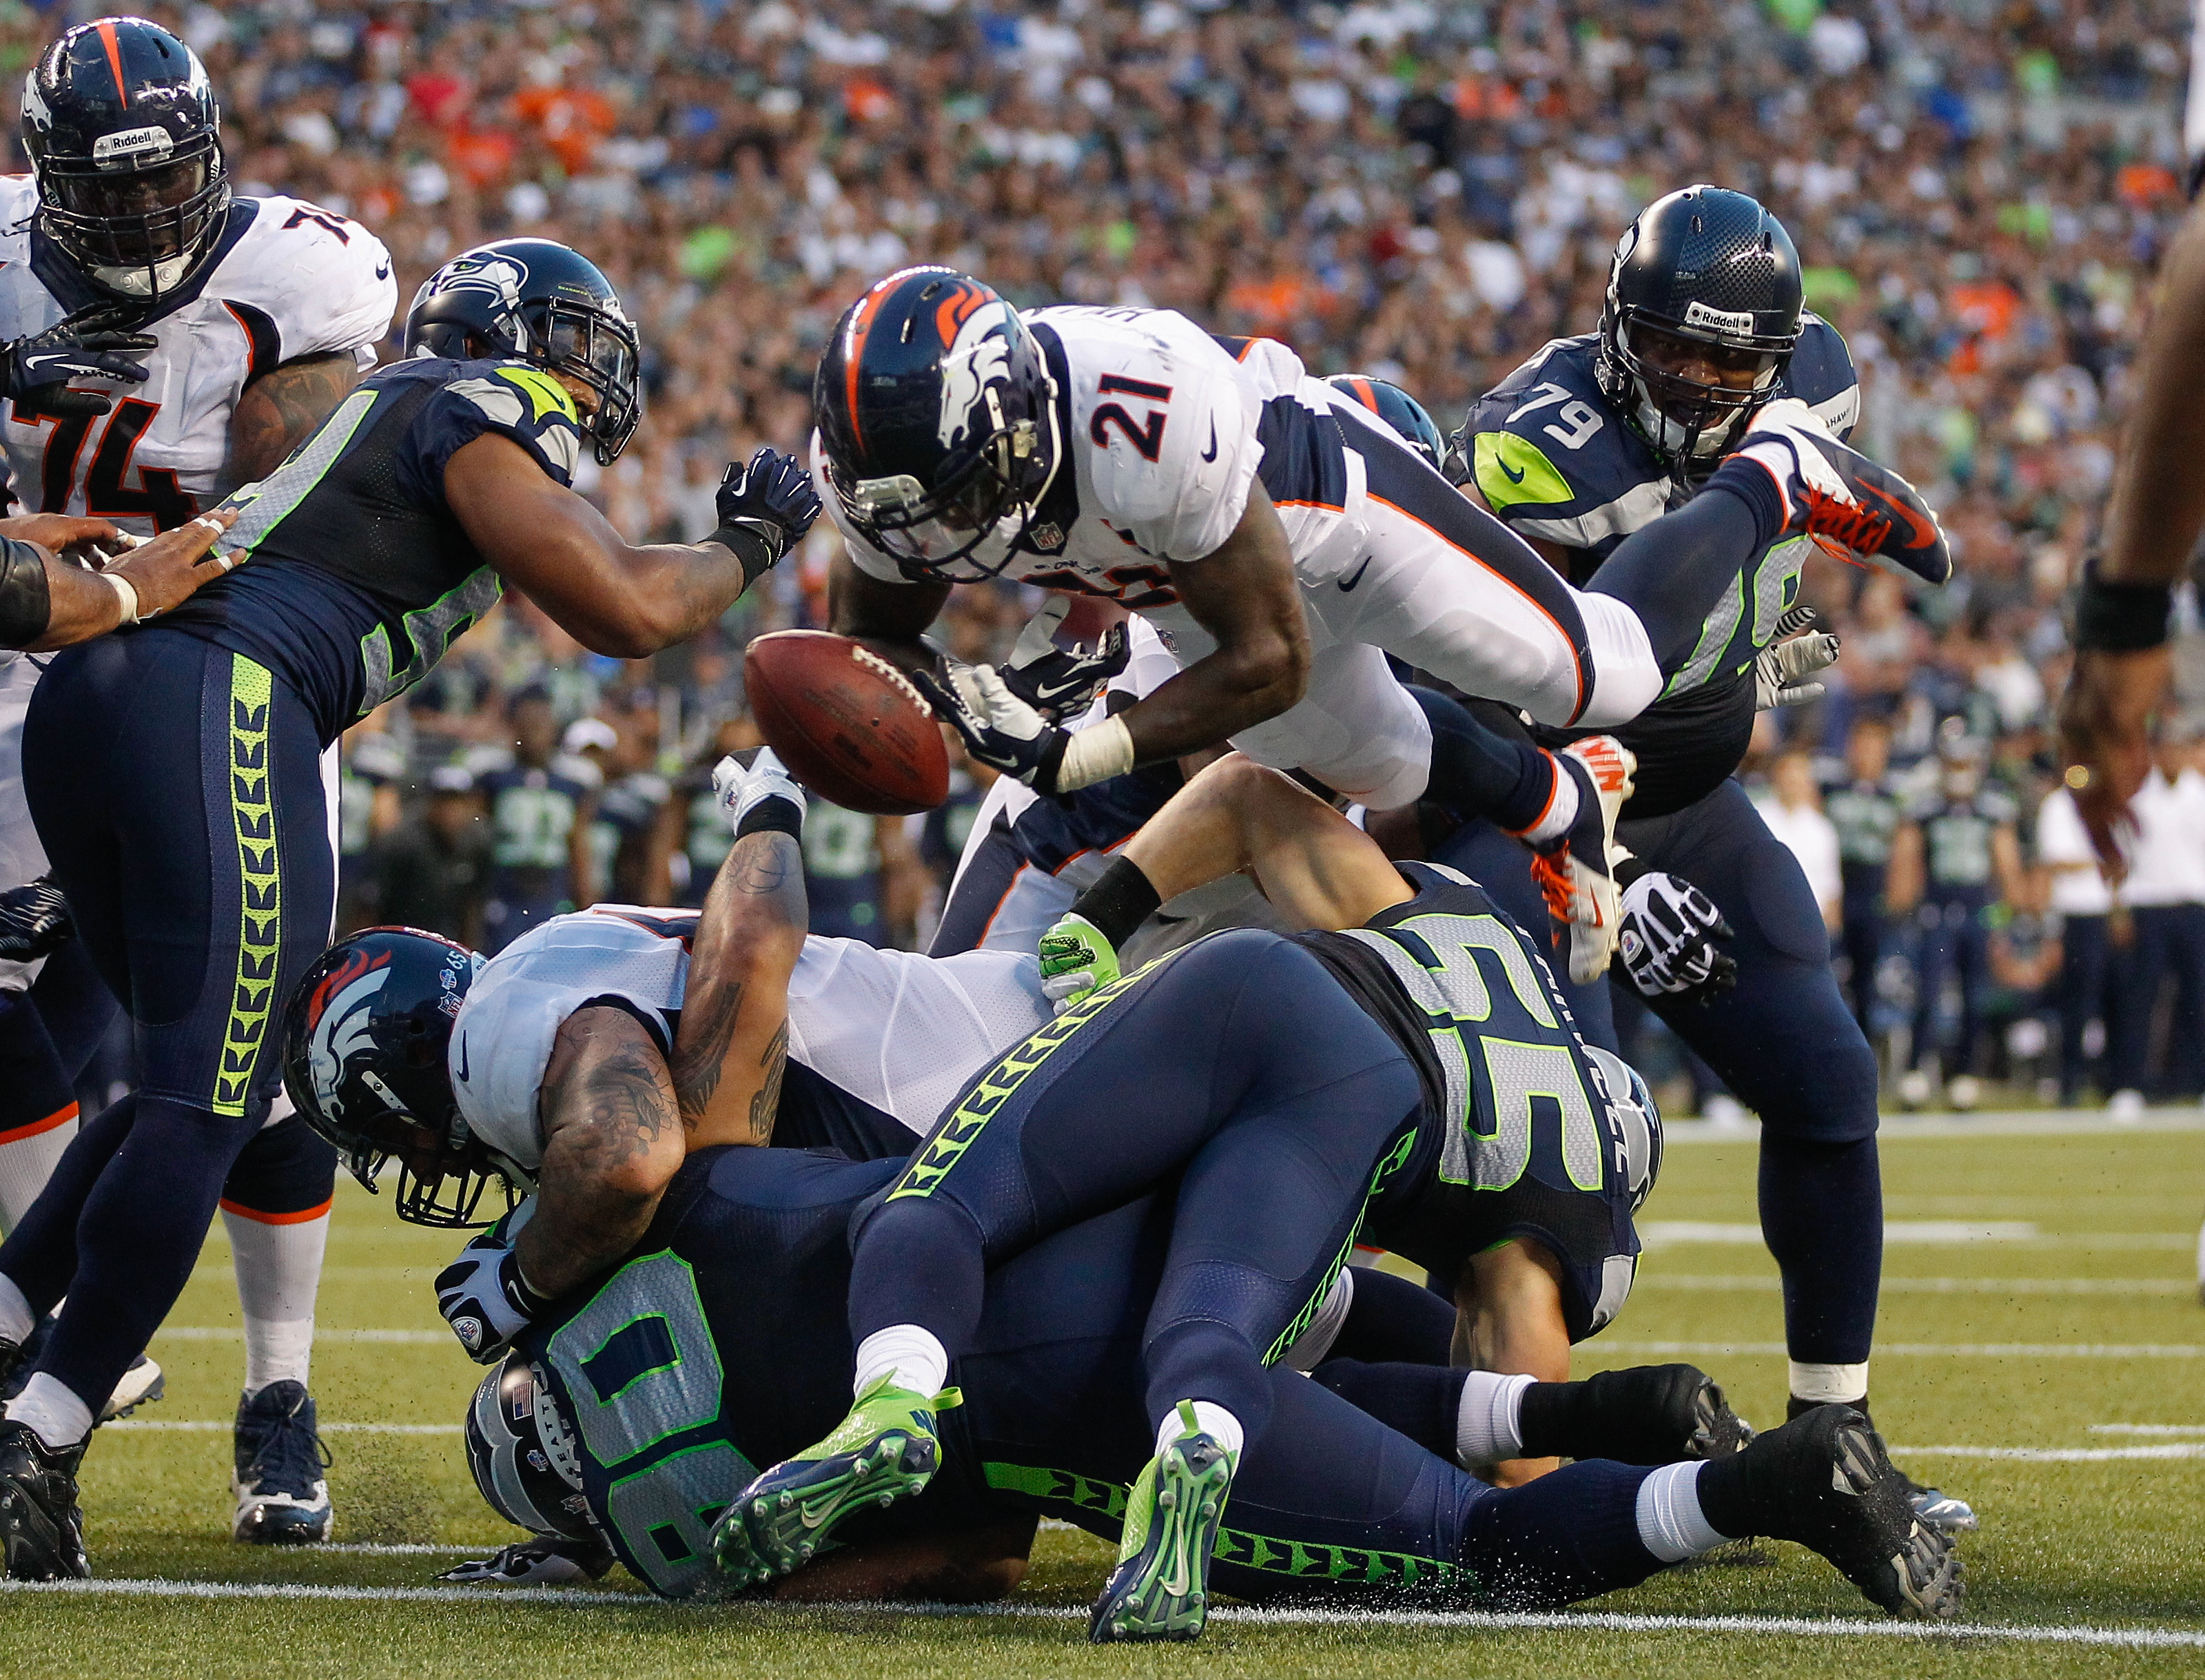 Running back Ronnie Hillman #21 of the Denver Broncos fumbles at the goal line against the Seattle Seahawks at CenturyLink Field on August 17, 2013 in Seattle, Washington.